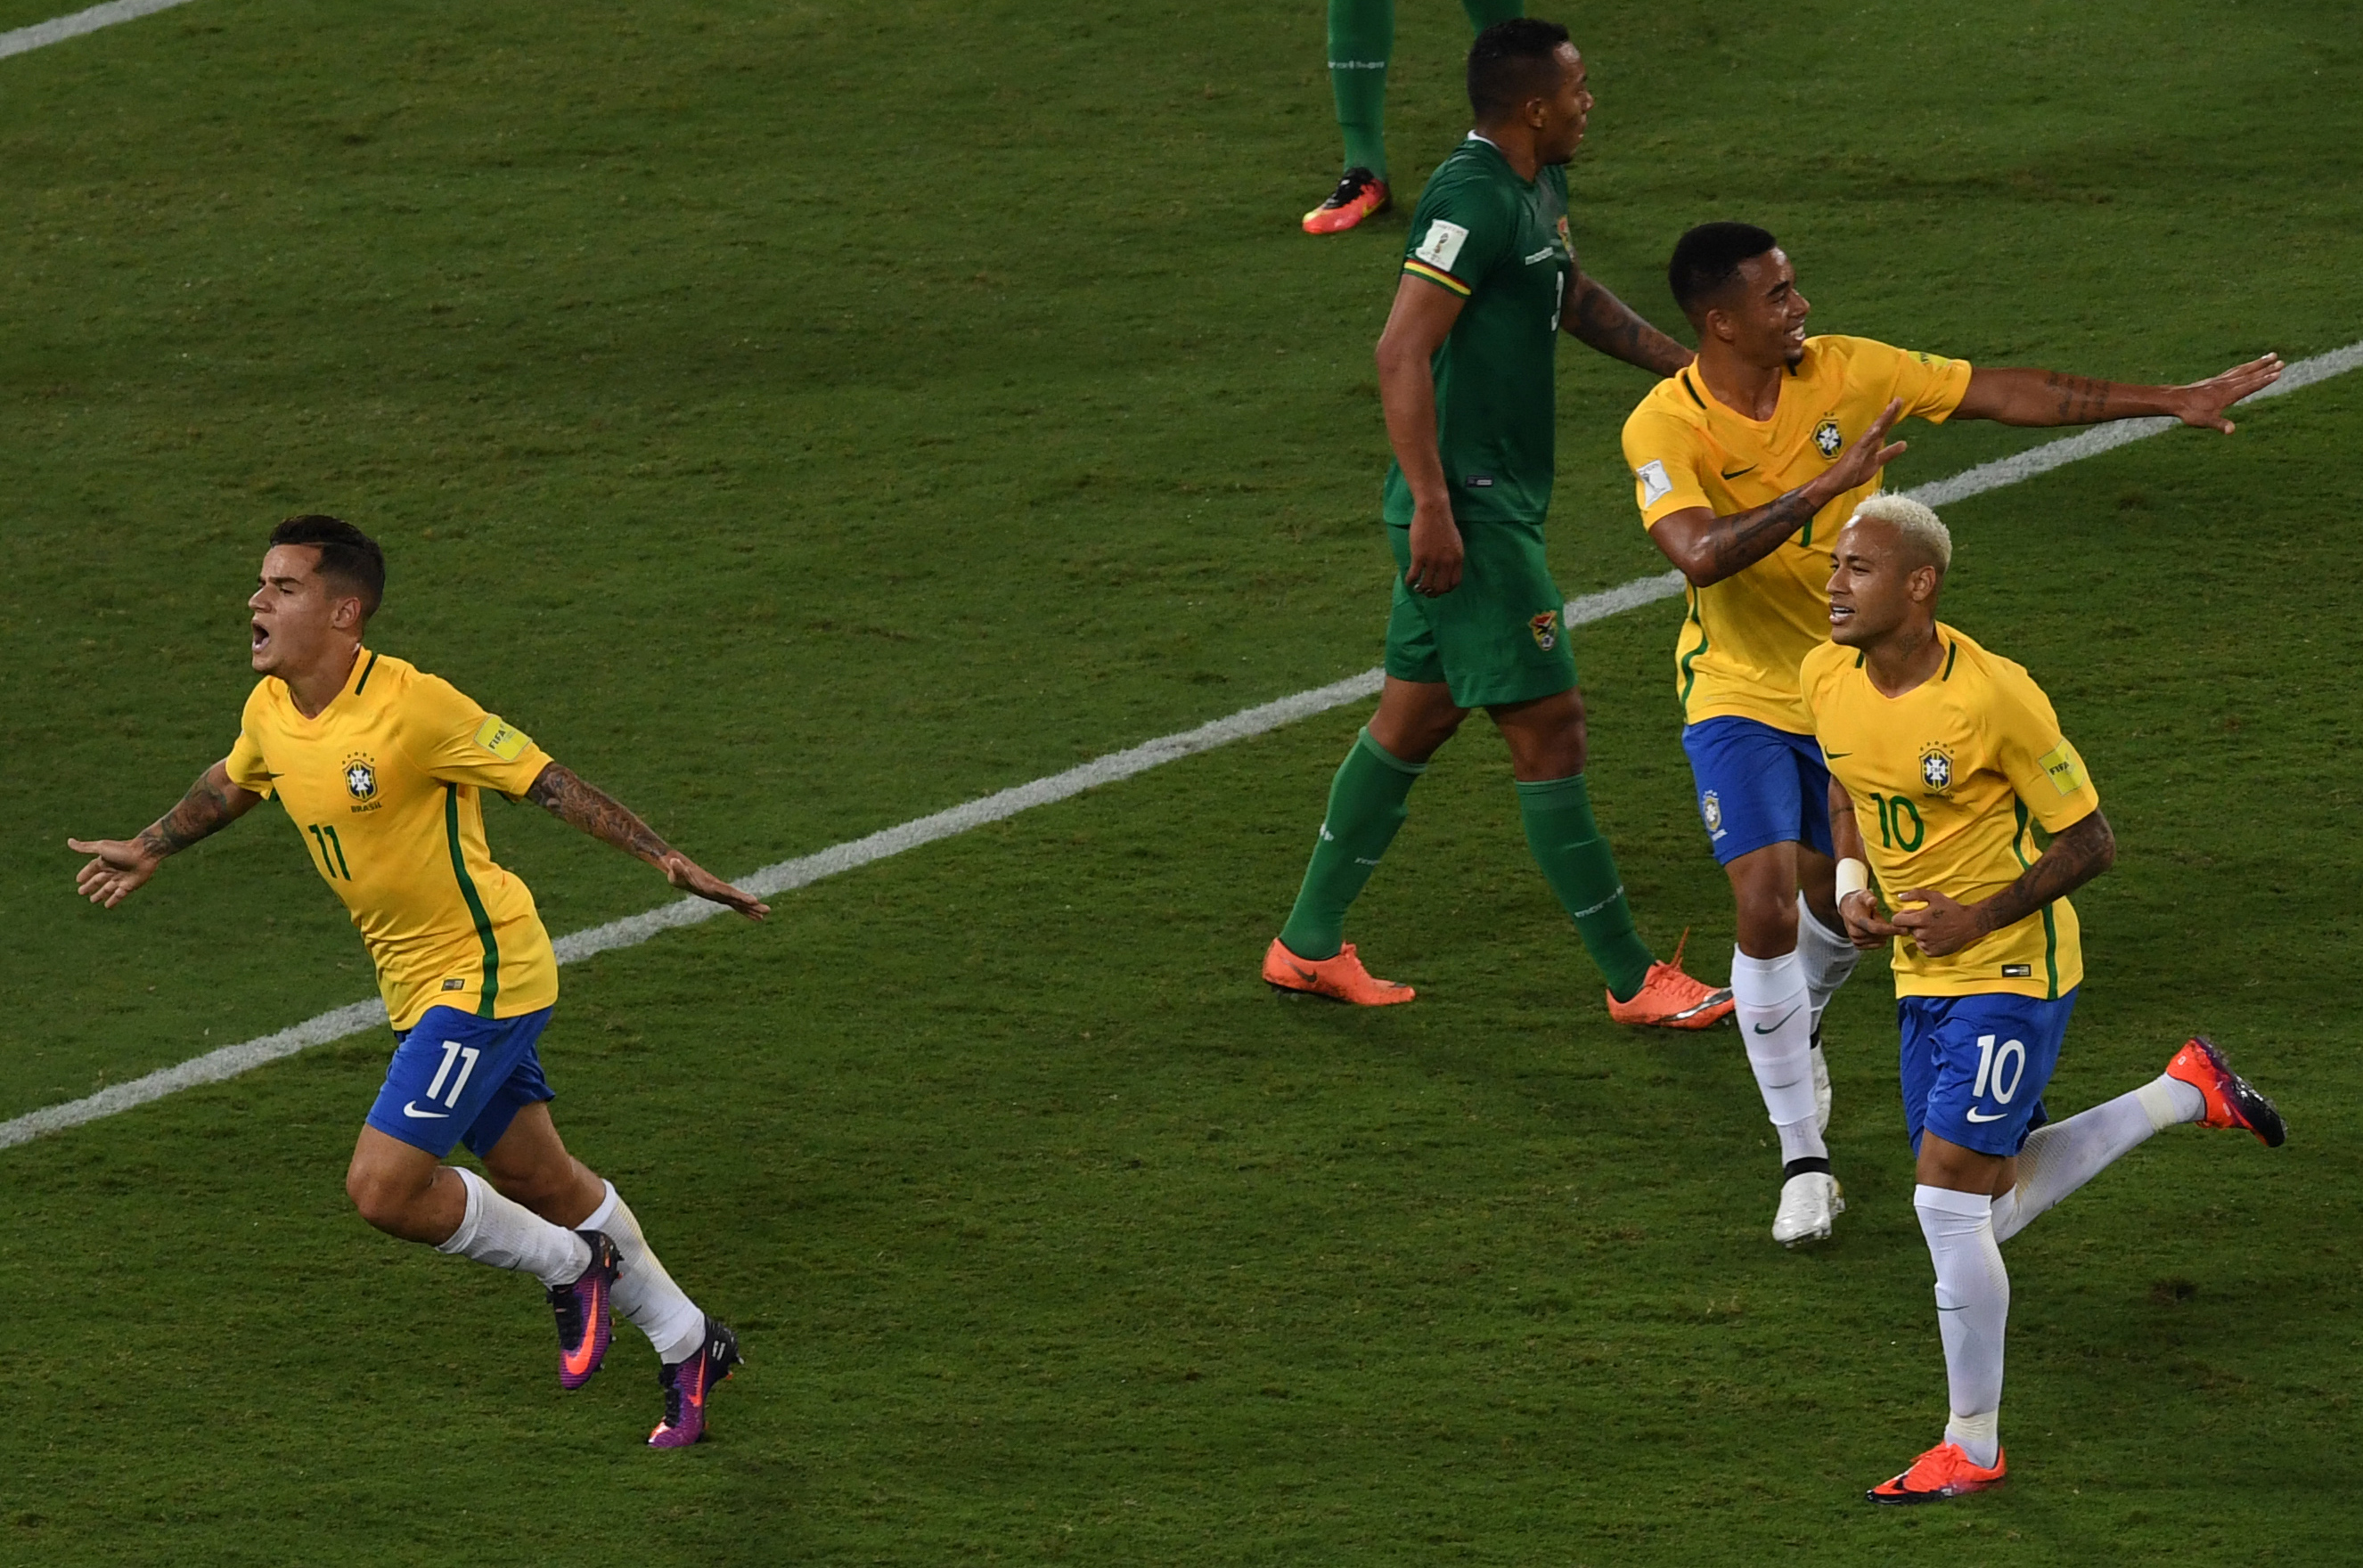 Brasil Vs Argentina: Brazil Vs Argentina: So Much More Than Neymar Vs Messi